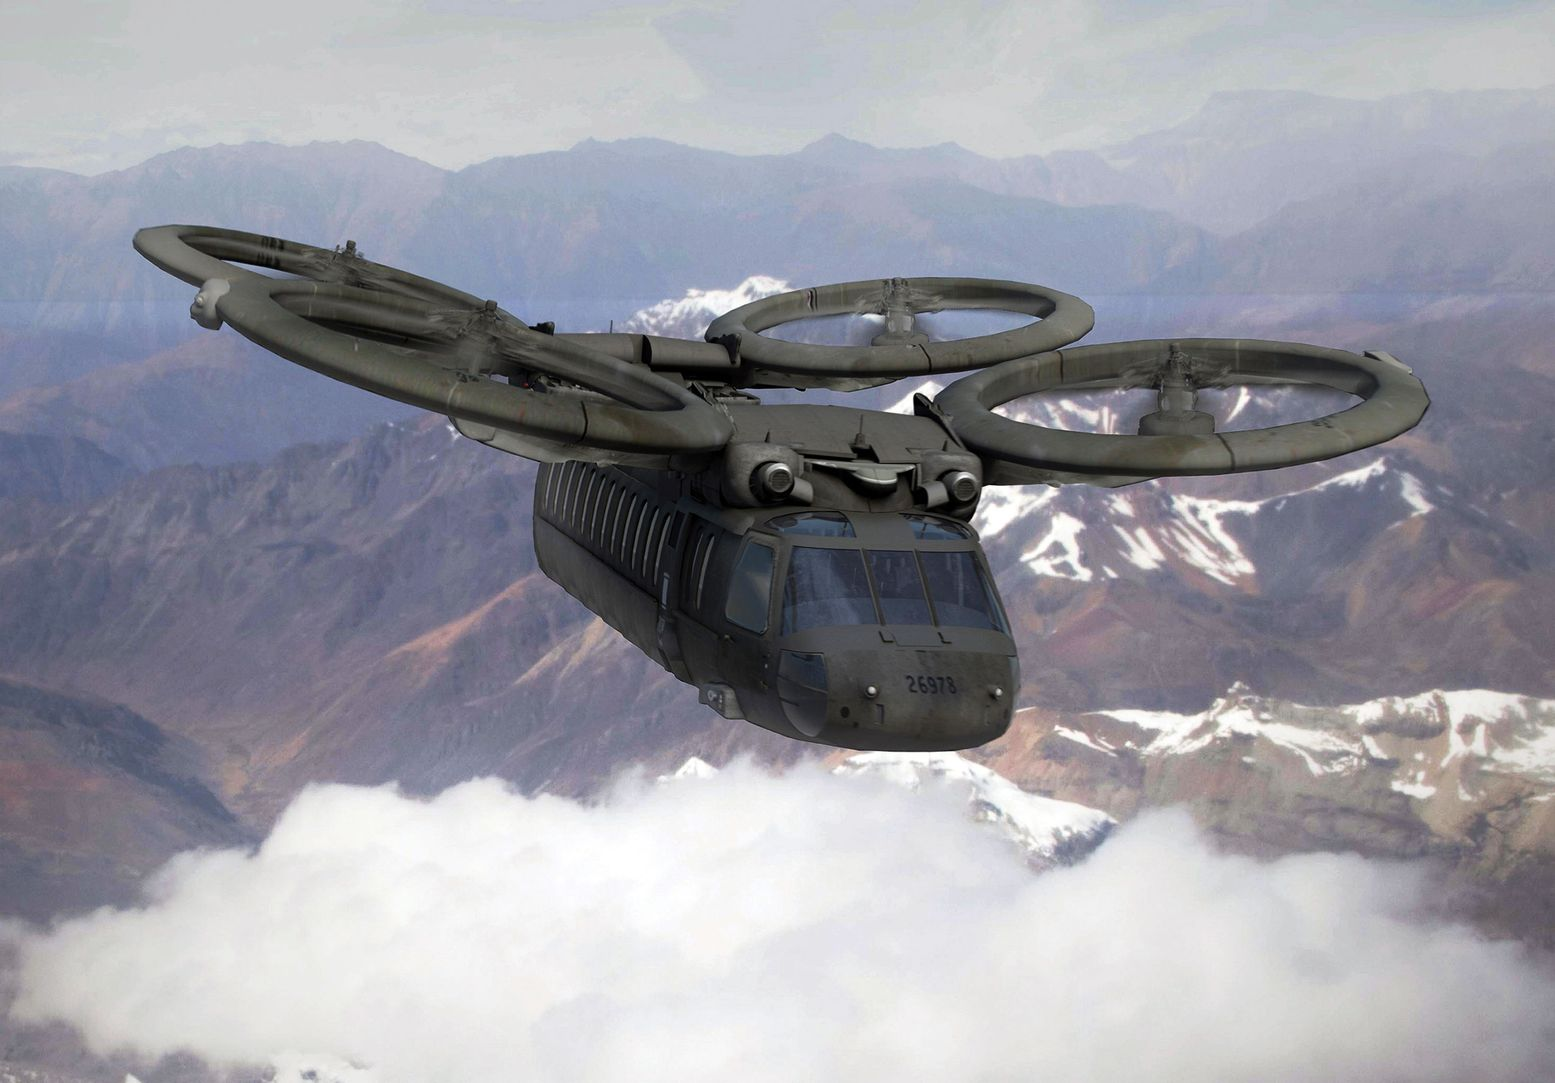 U.S. Army's Search for a New Scout Helicopter was Definitely Inspired